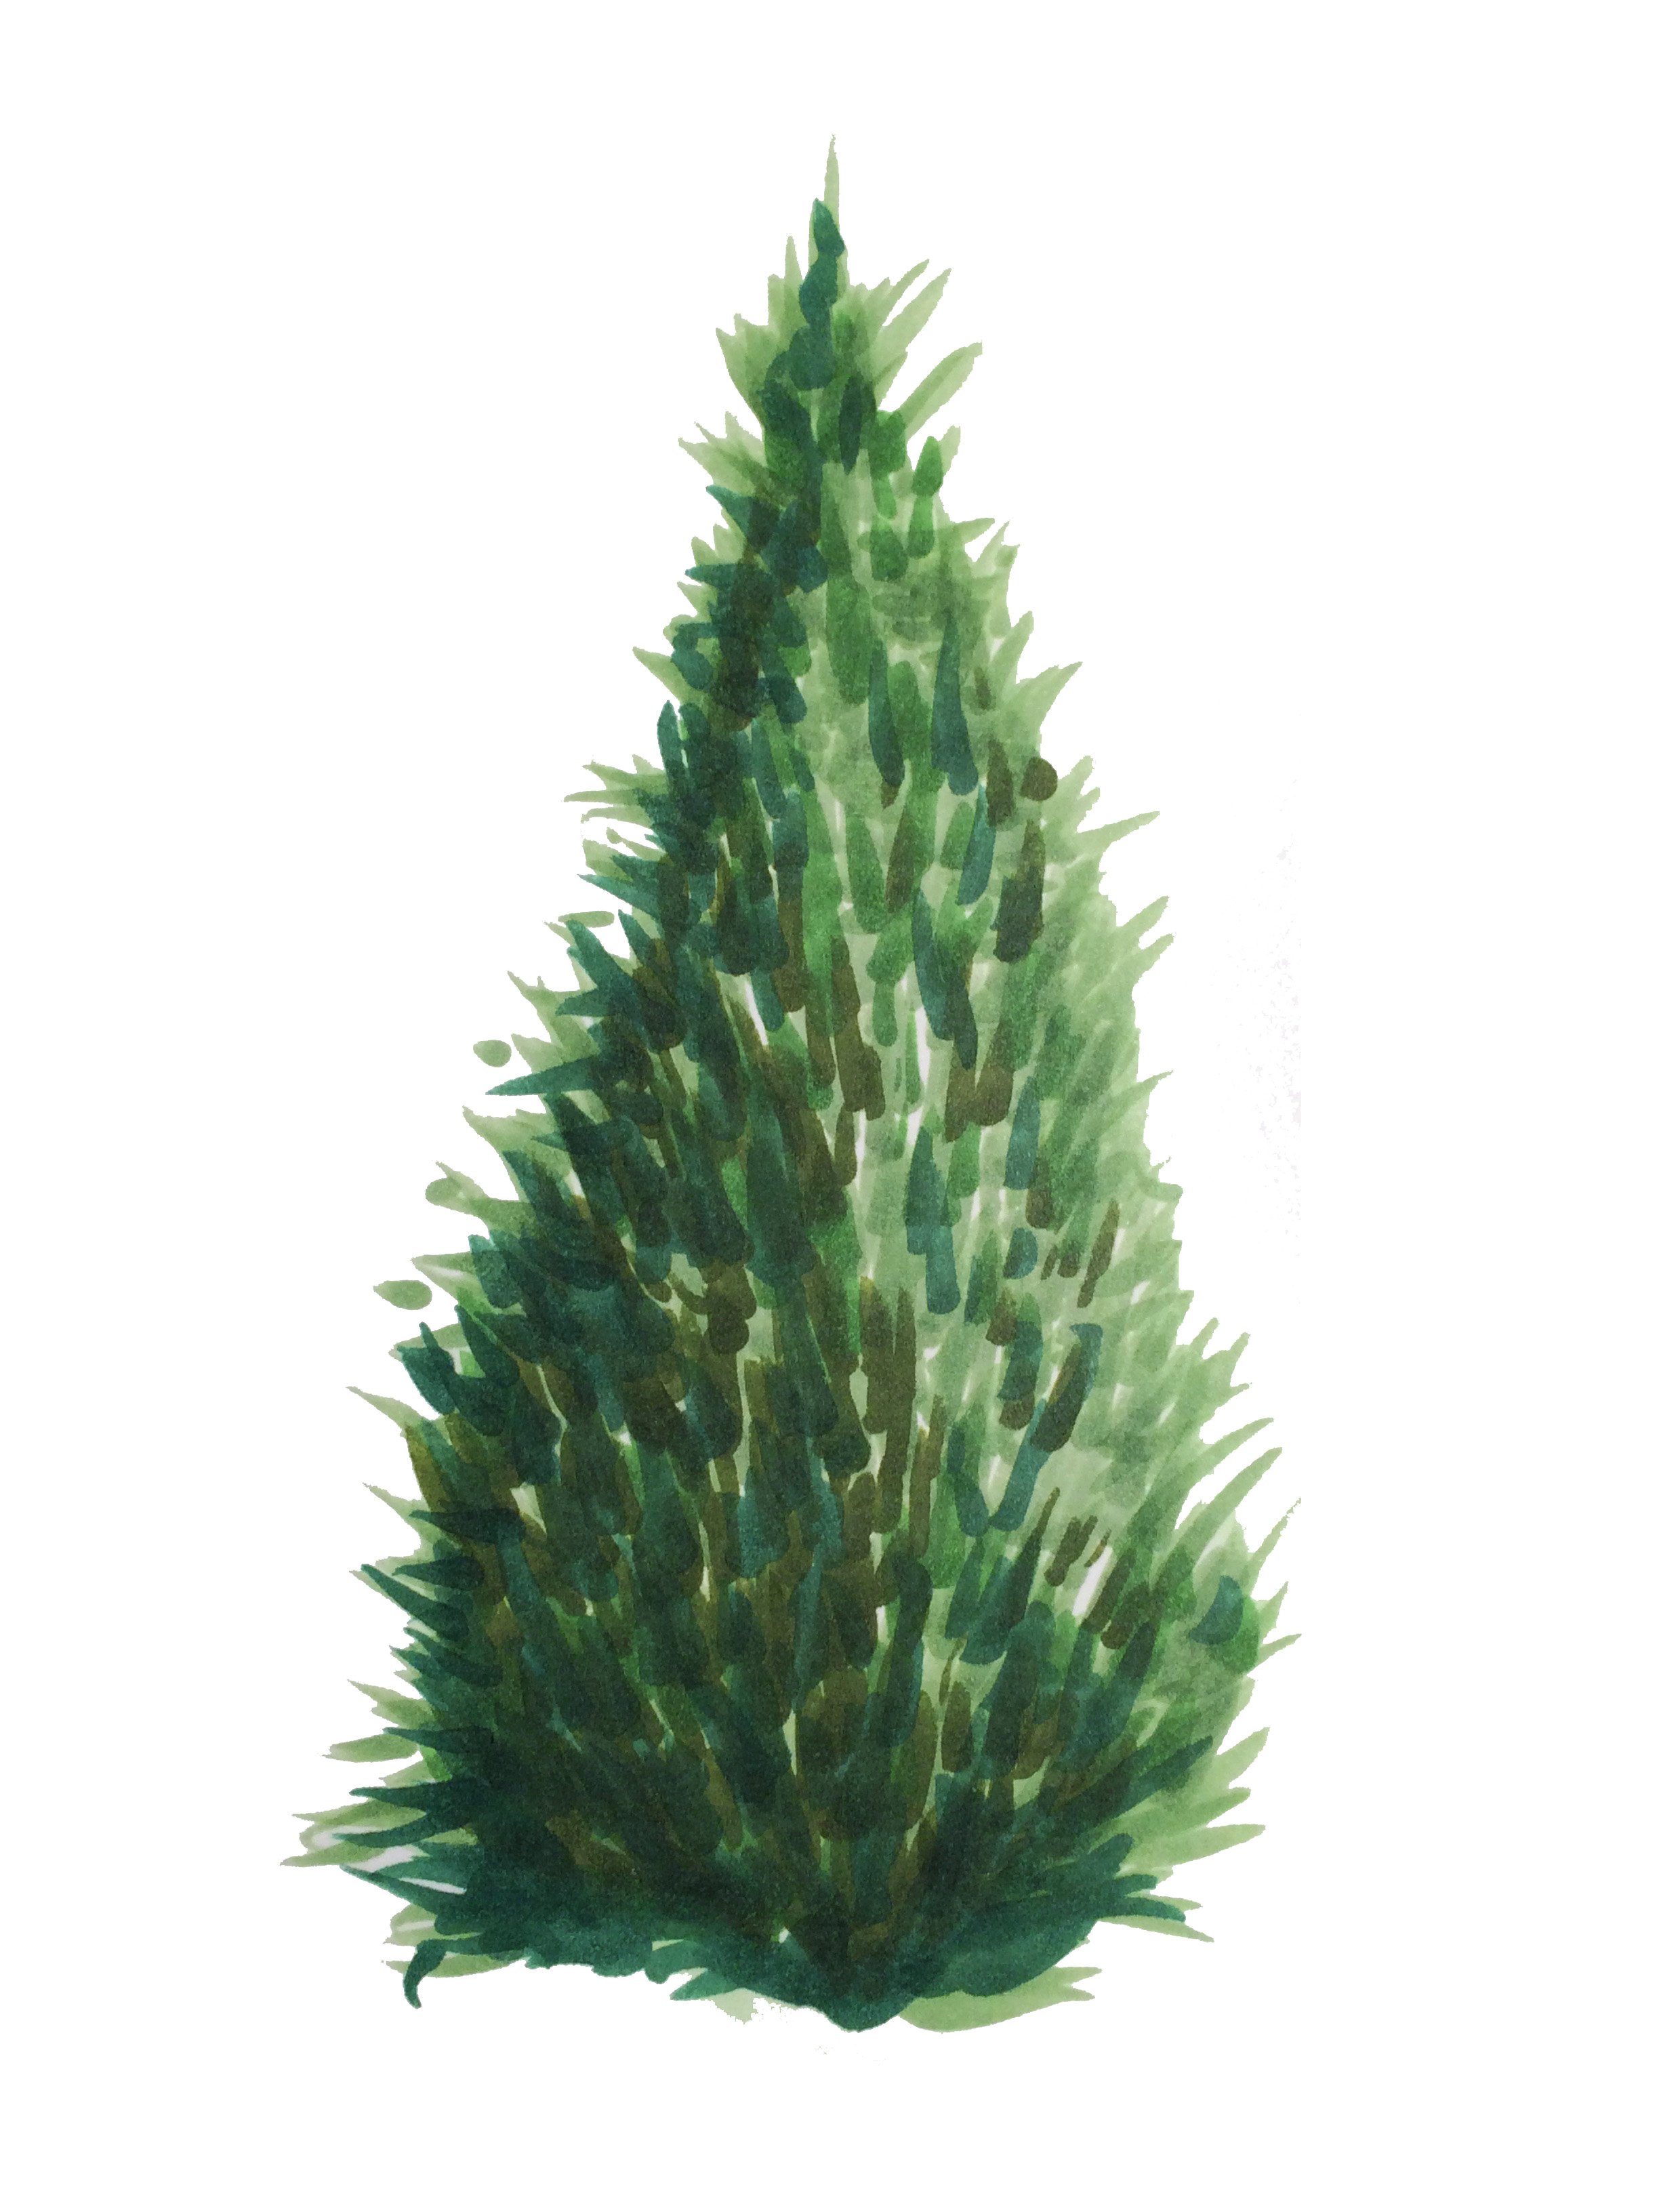 2448x3264 Copic Inspire Marker Drawings, Fir Tree And Copic